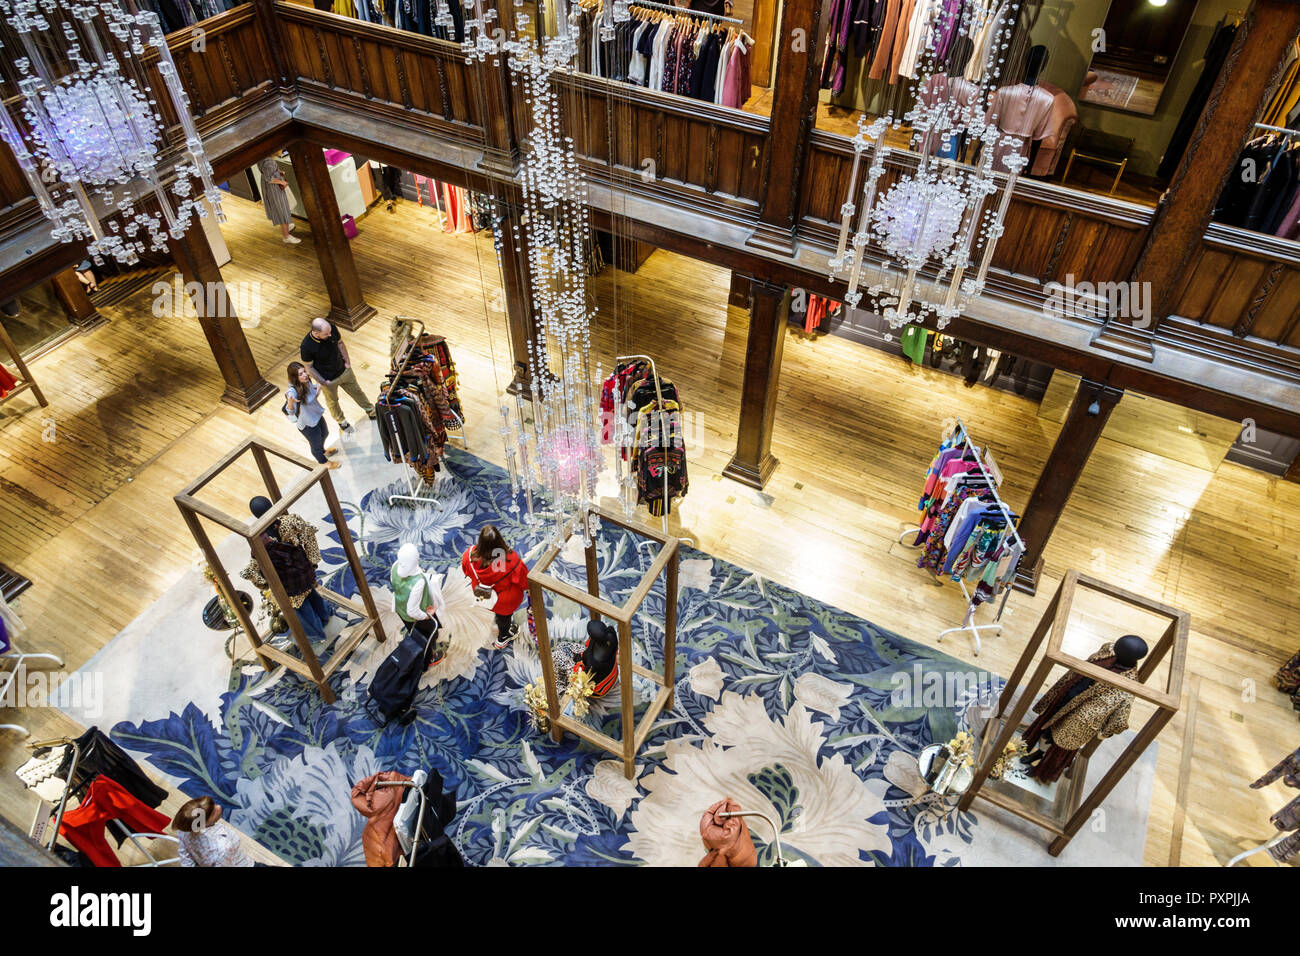 London England United Kingdom Great Britain Soho Liberty Department Store shopping luxury brands upmarket atrium lightwell overhead view railings disp - Stock Image